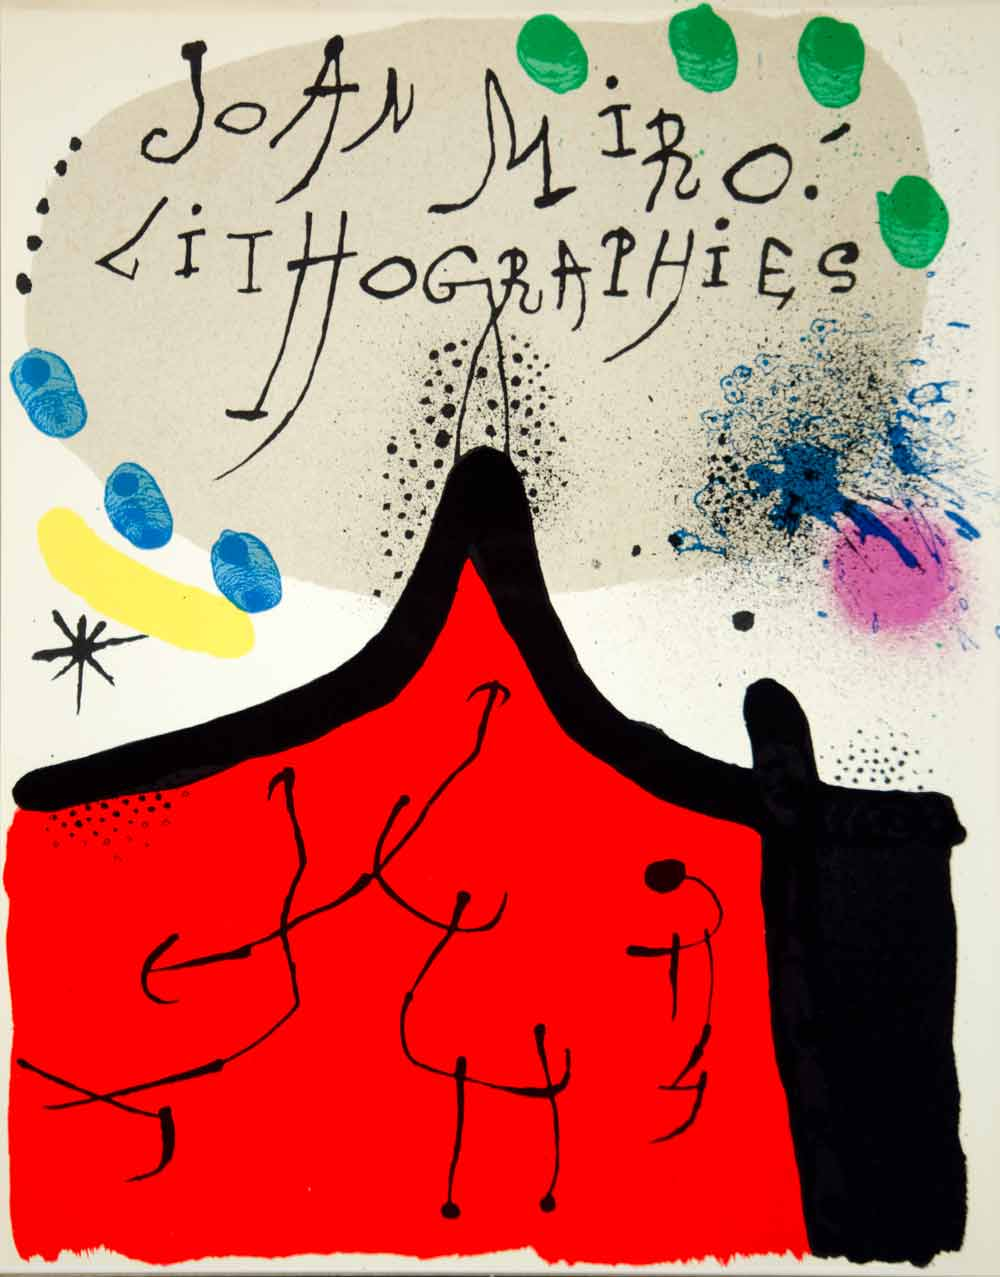 1972 Color Lithograph Joan Miro Lithographies Modern Abstract Artist Spanish